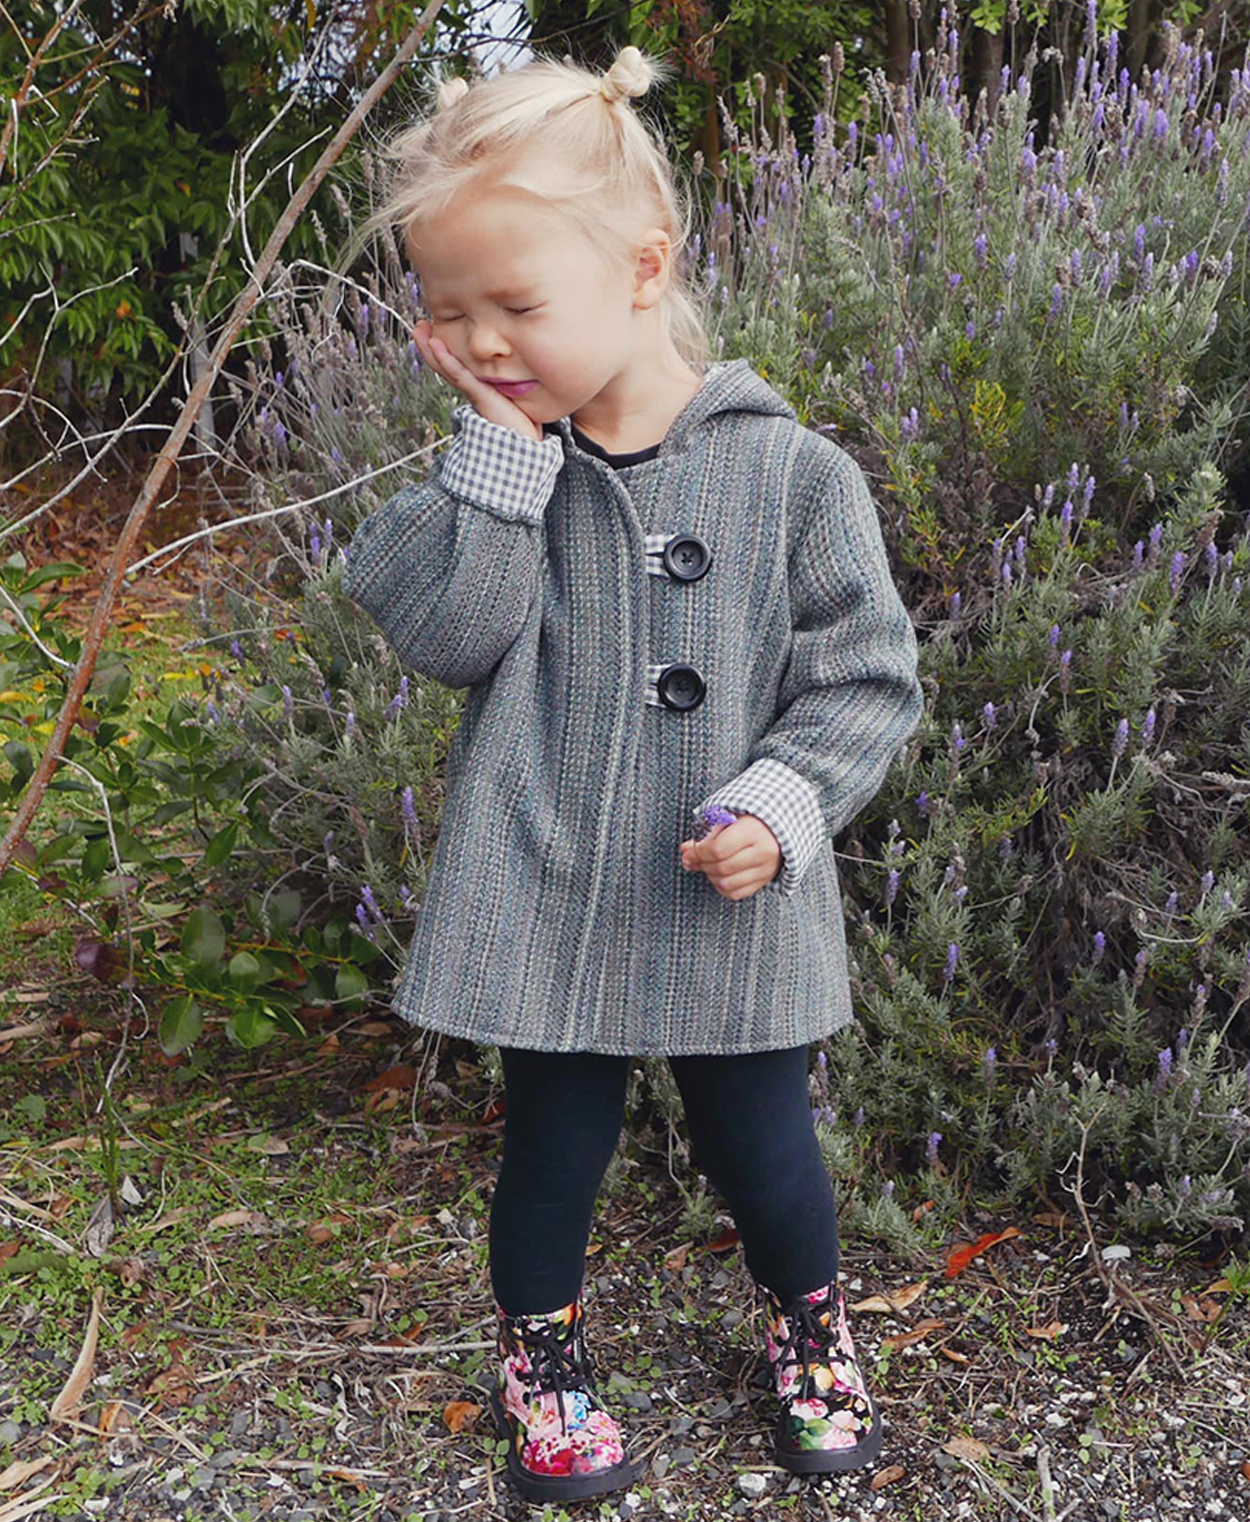 Awhi Coat sewing pattern by Below the Kowhai